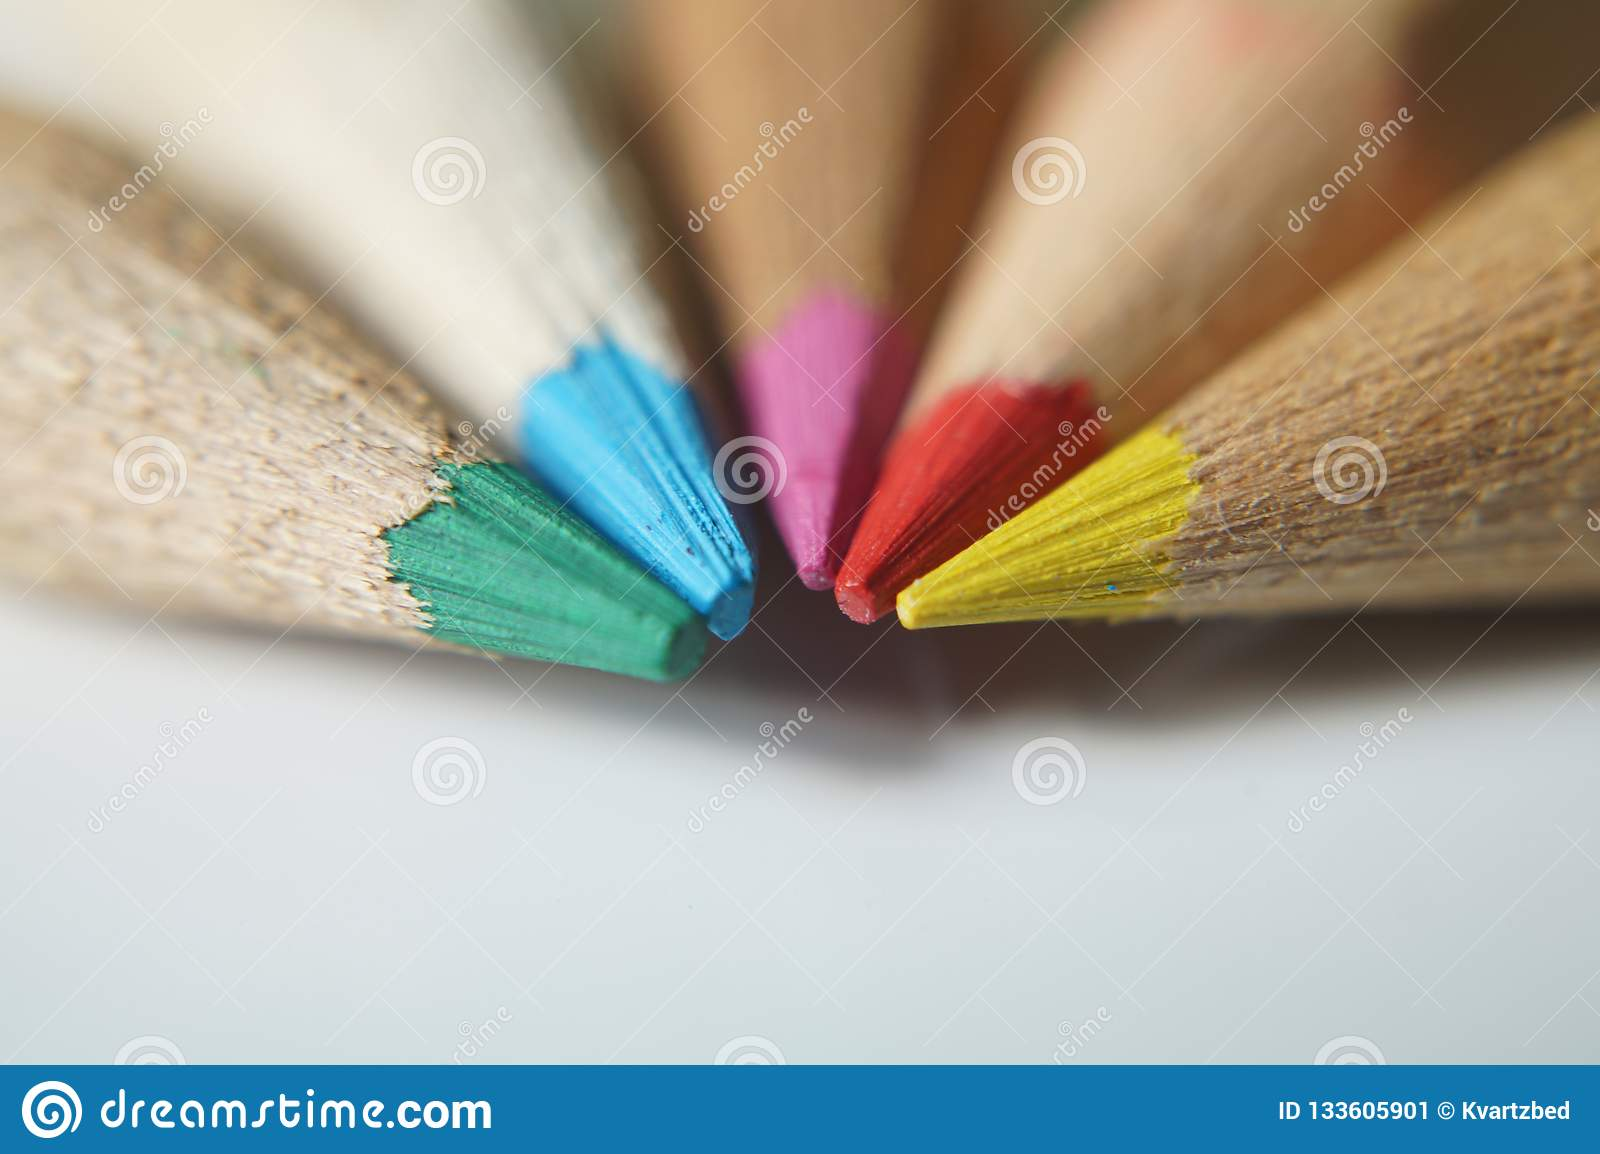 Close up on colored wooden pencils